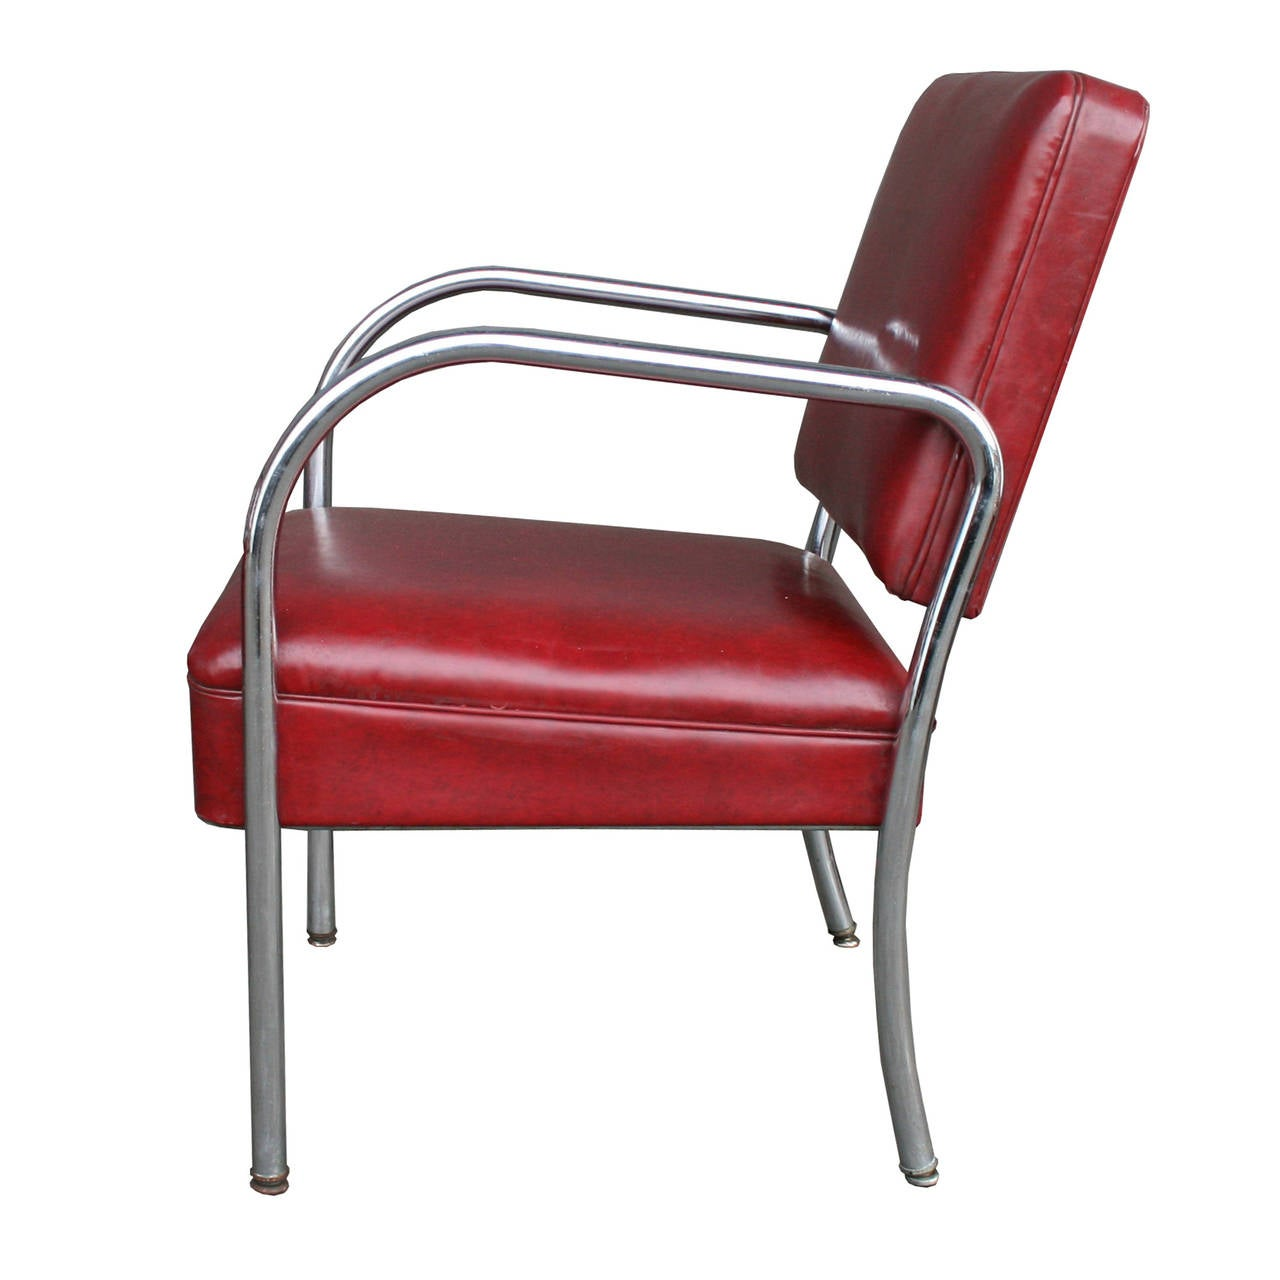 ... of Four Maroon Vinyl and Chrome Barber Shop Chairs C1945 at 1stdibs